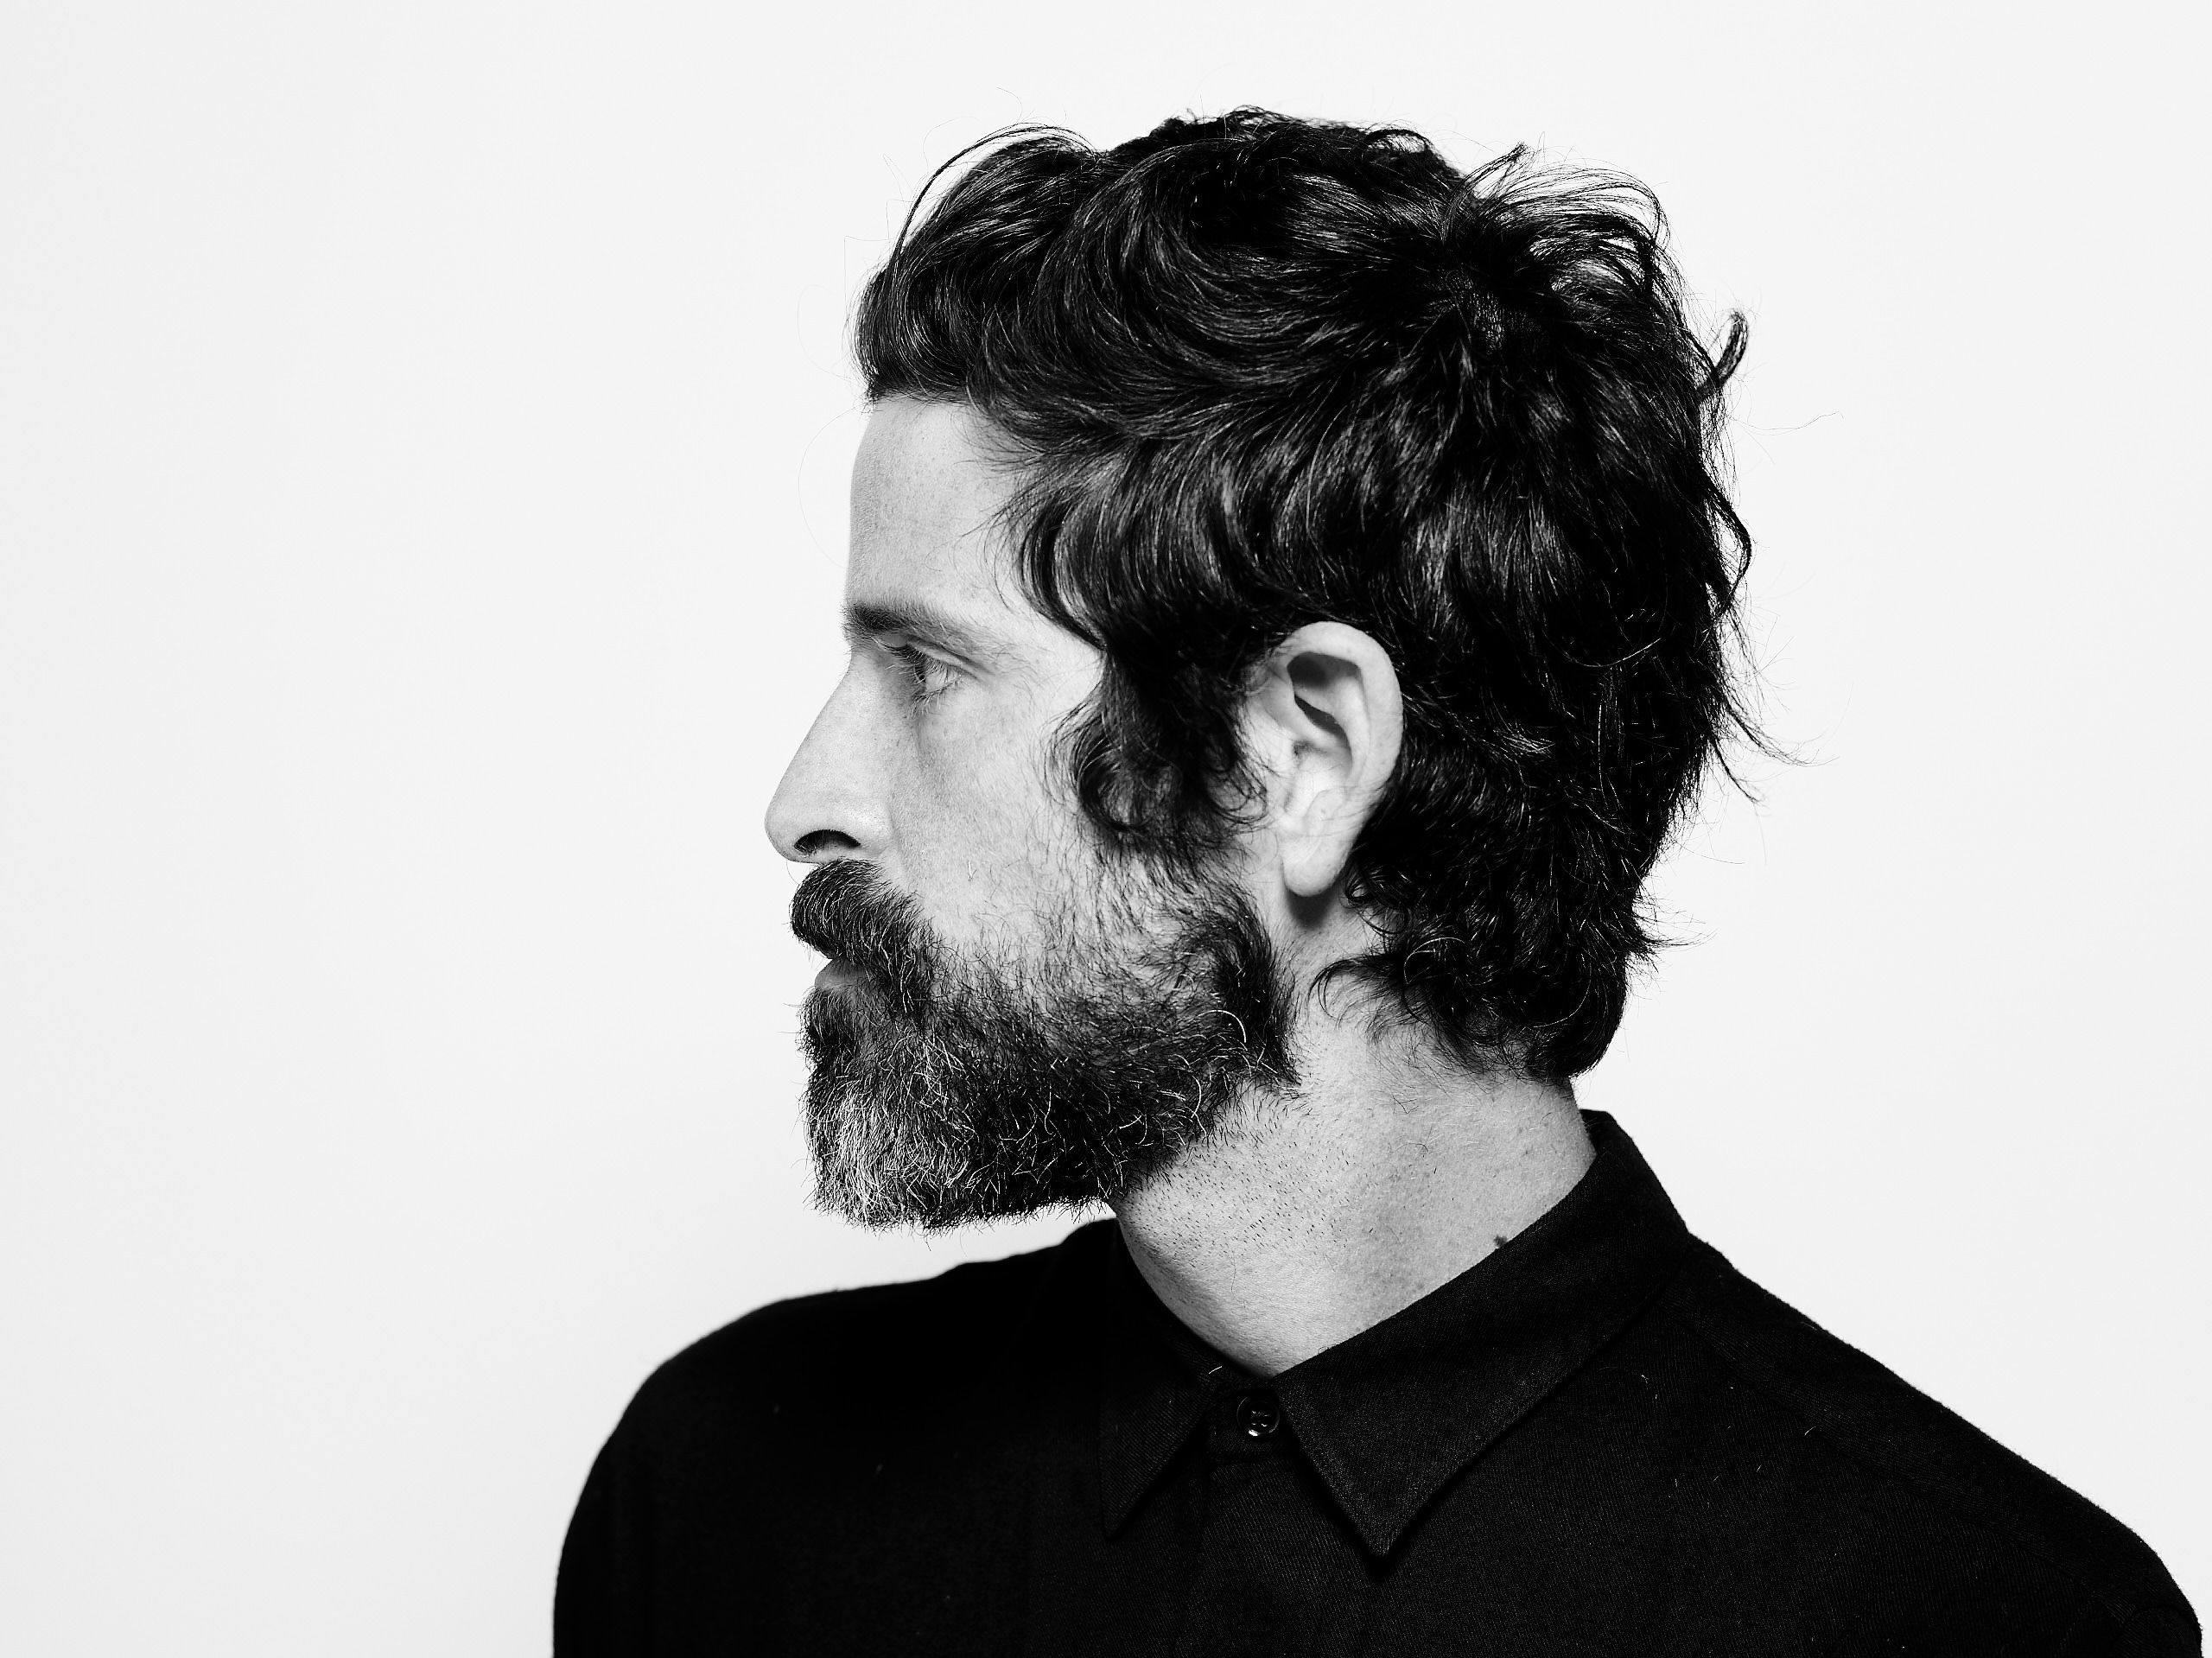 The Locus Festival preview of July 16th with Devendra Banhart, is postponed to the summer 2022